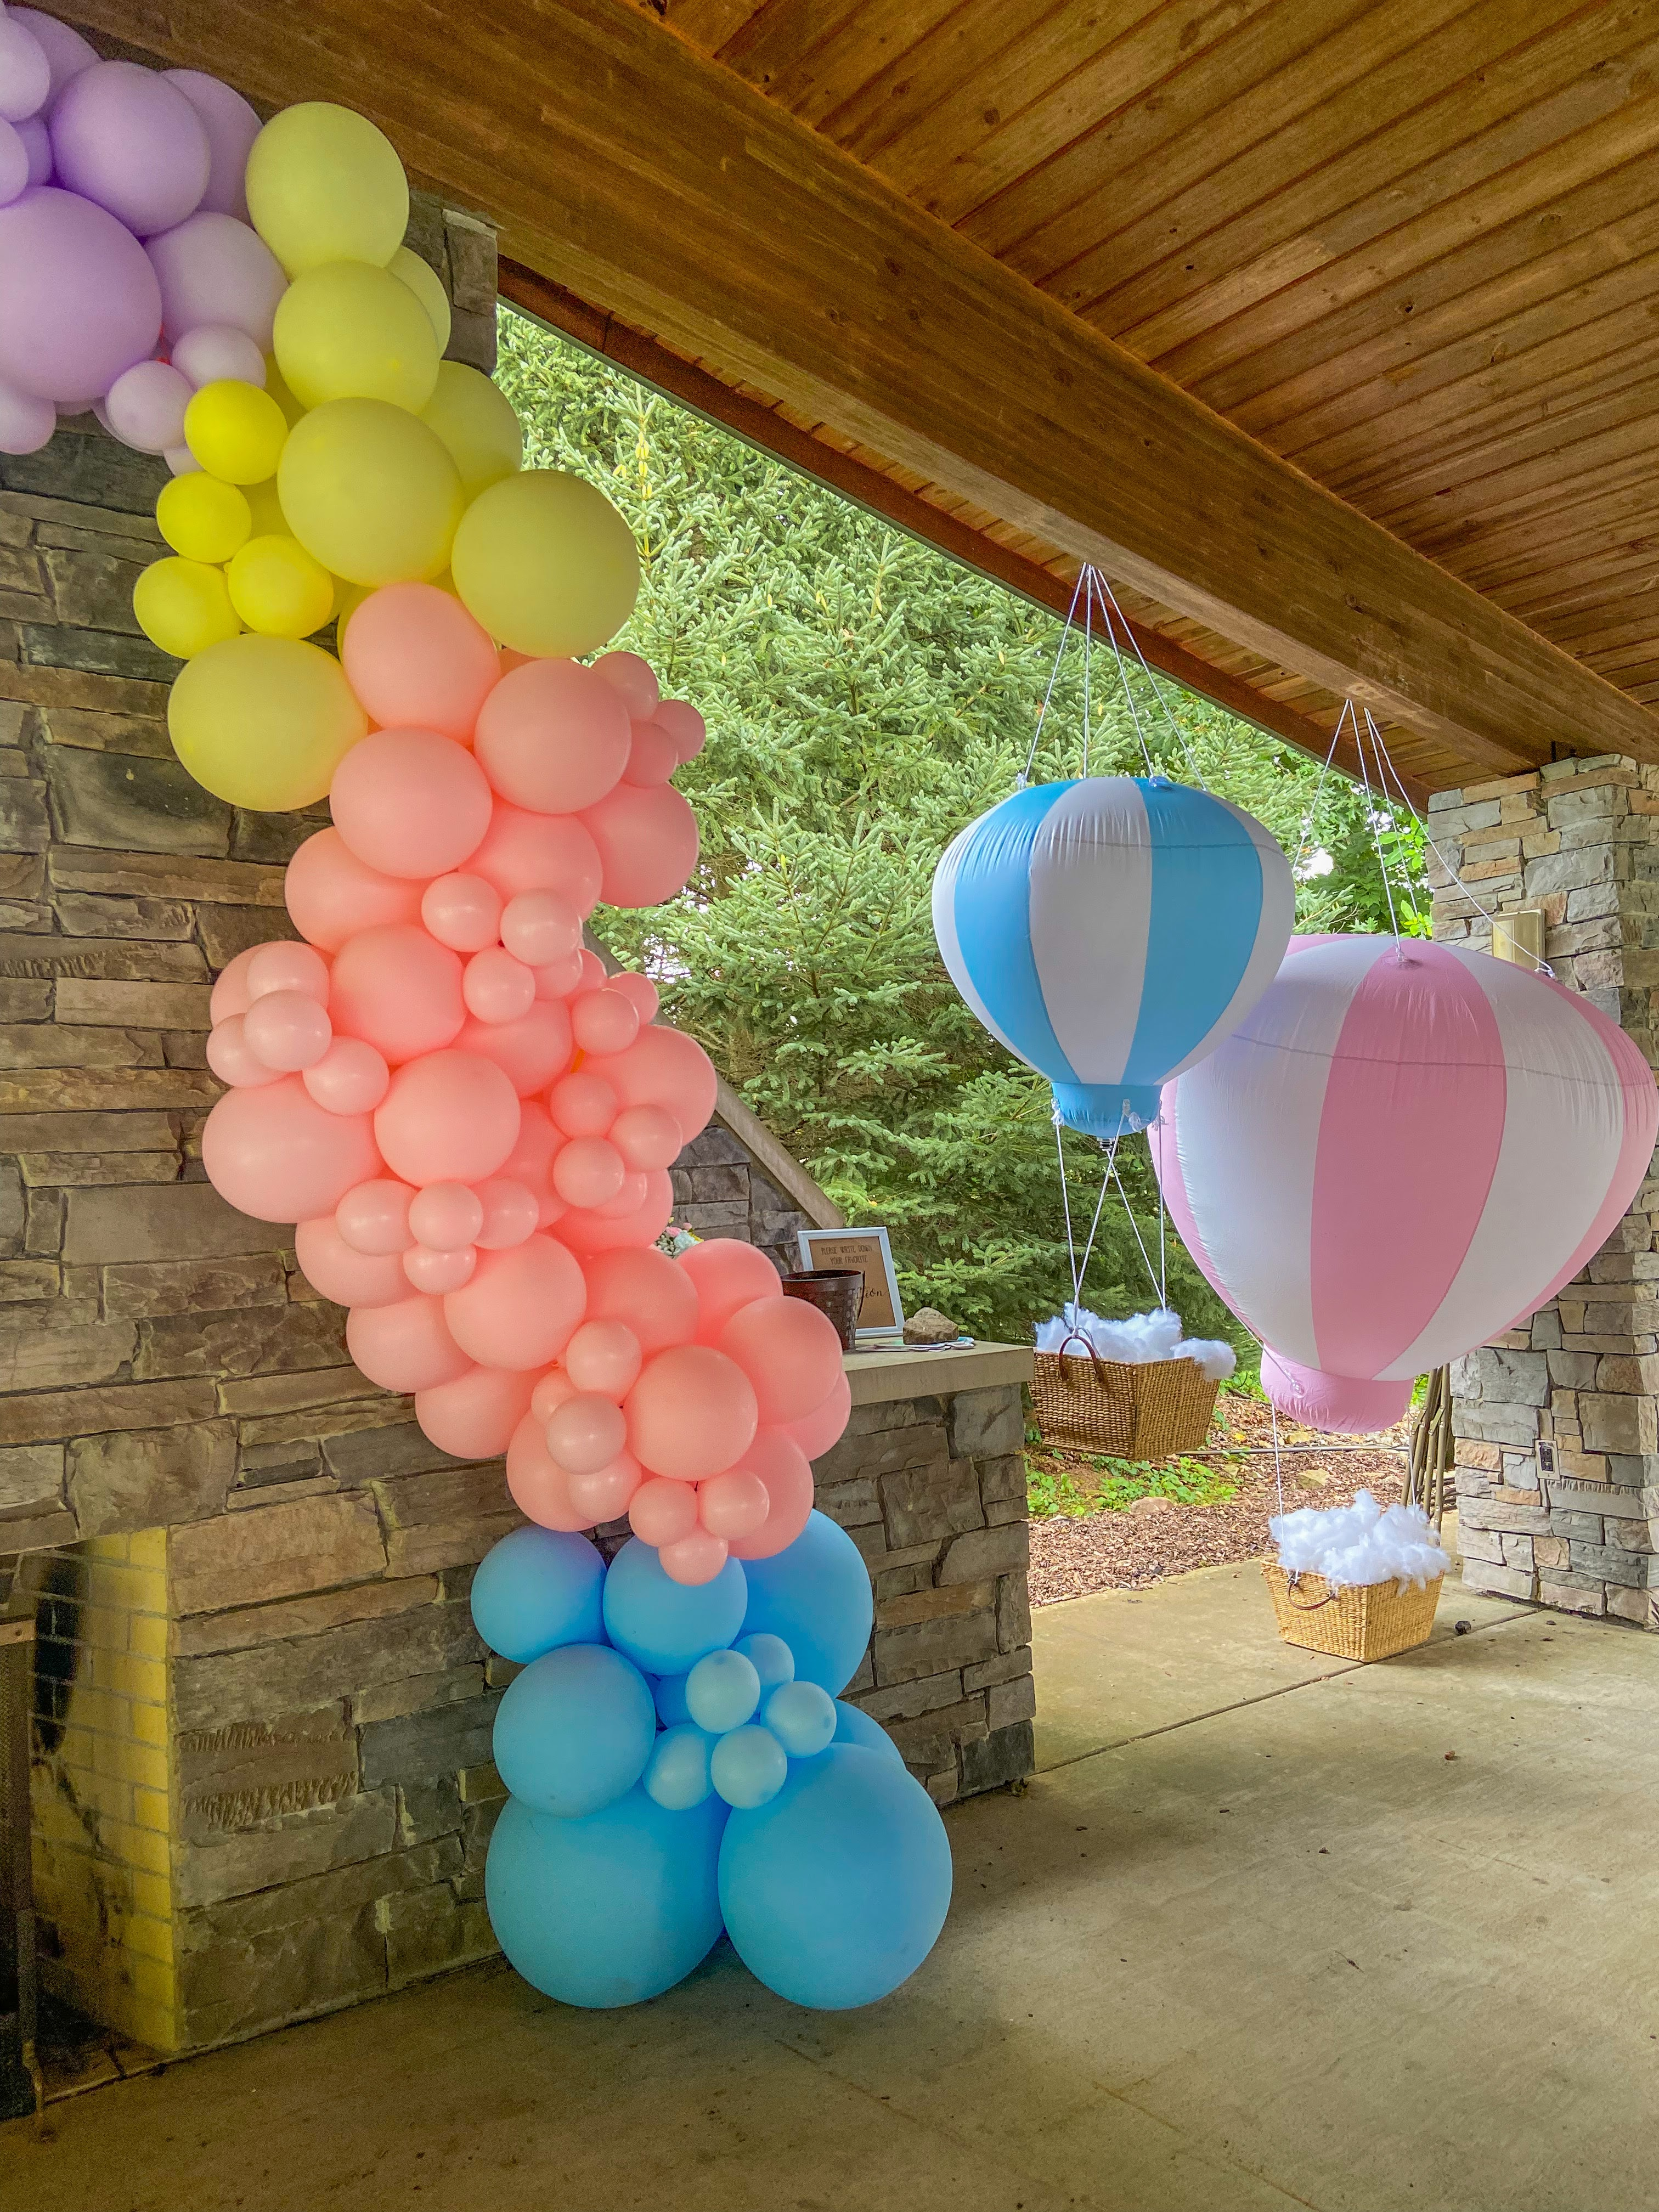 A pastel balloon garland with blue, pink, yellow, and purple balloons under a pavillion.